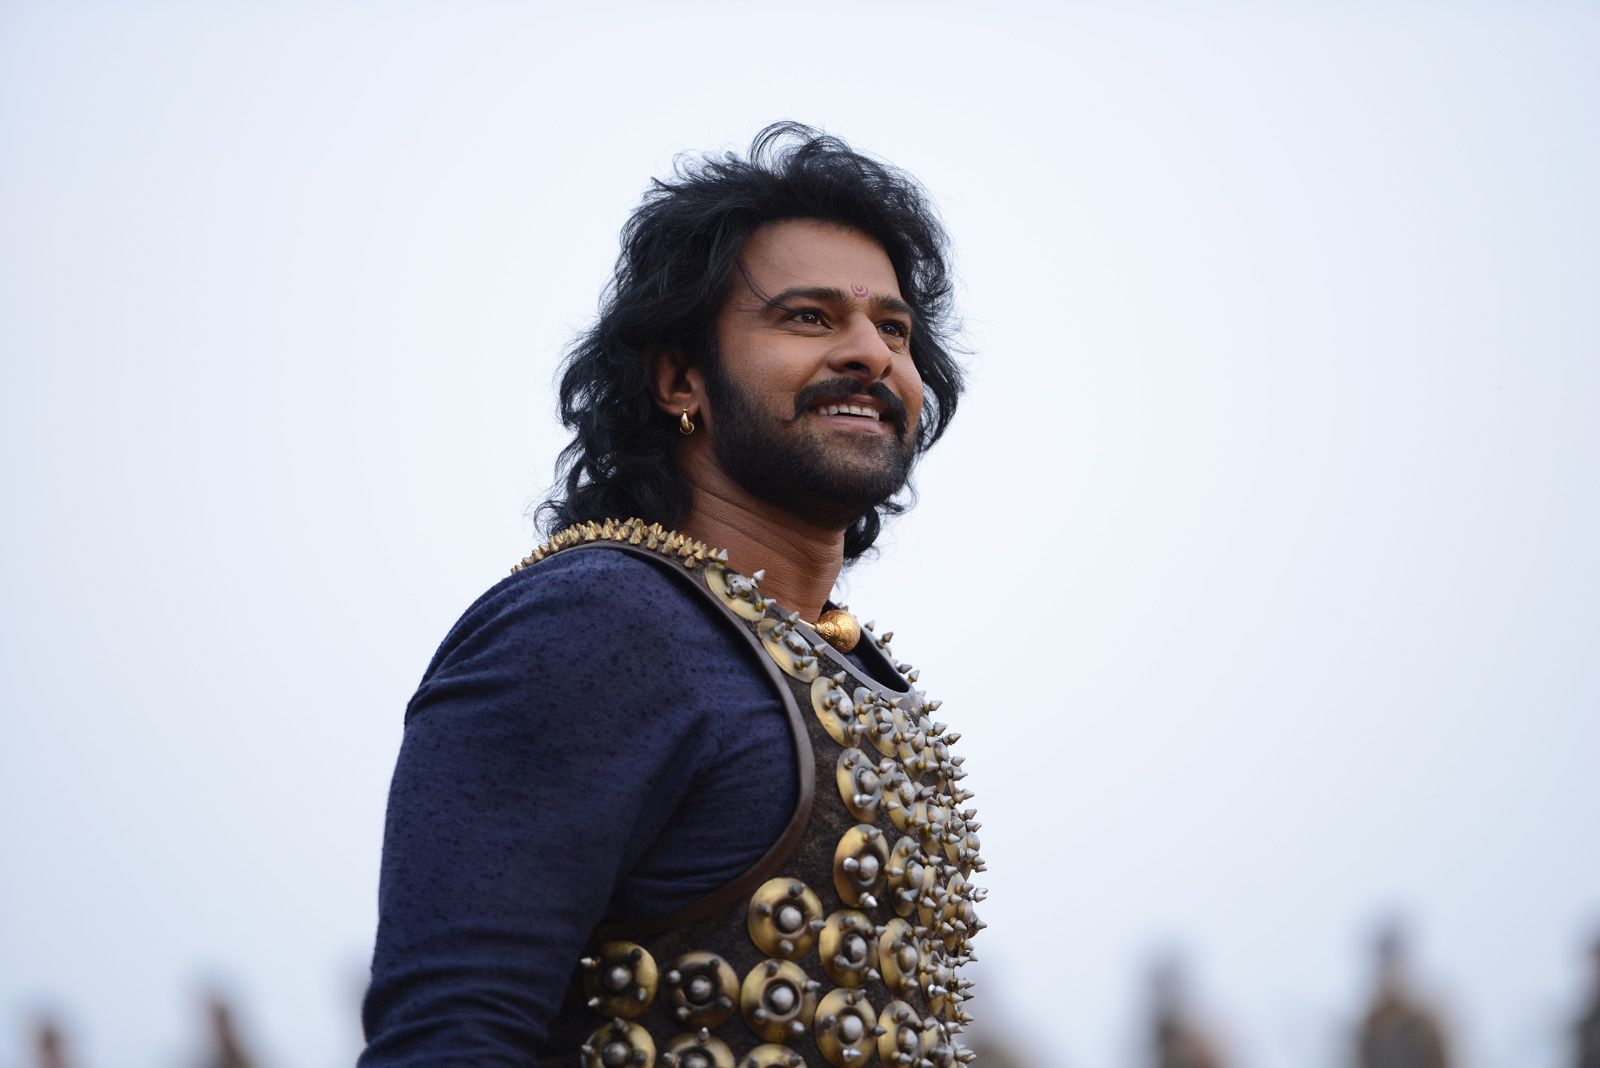 prabhasmyhero blog: baahubali : ultra hd stills